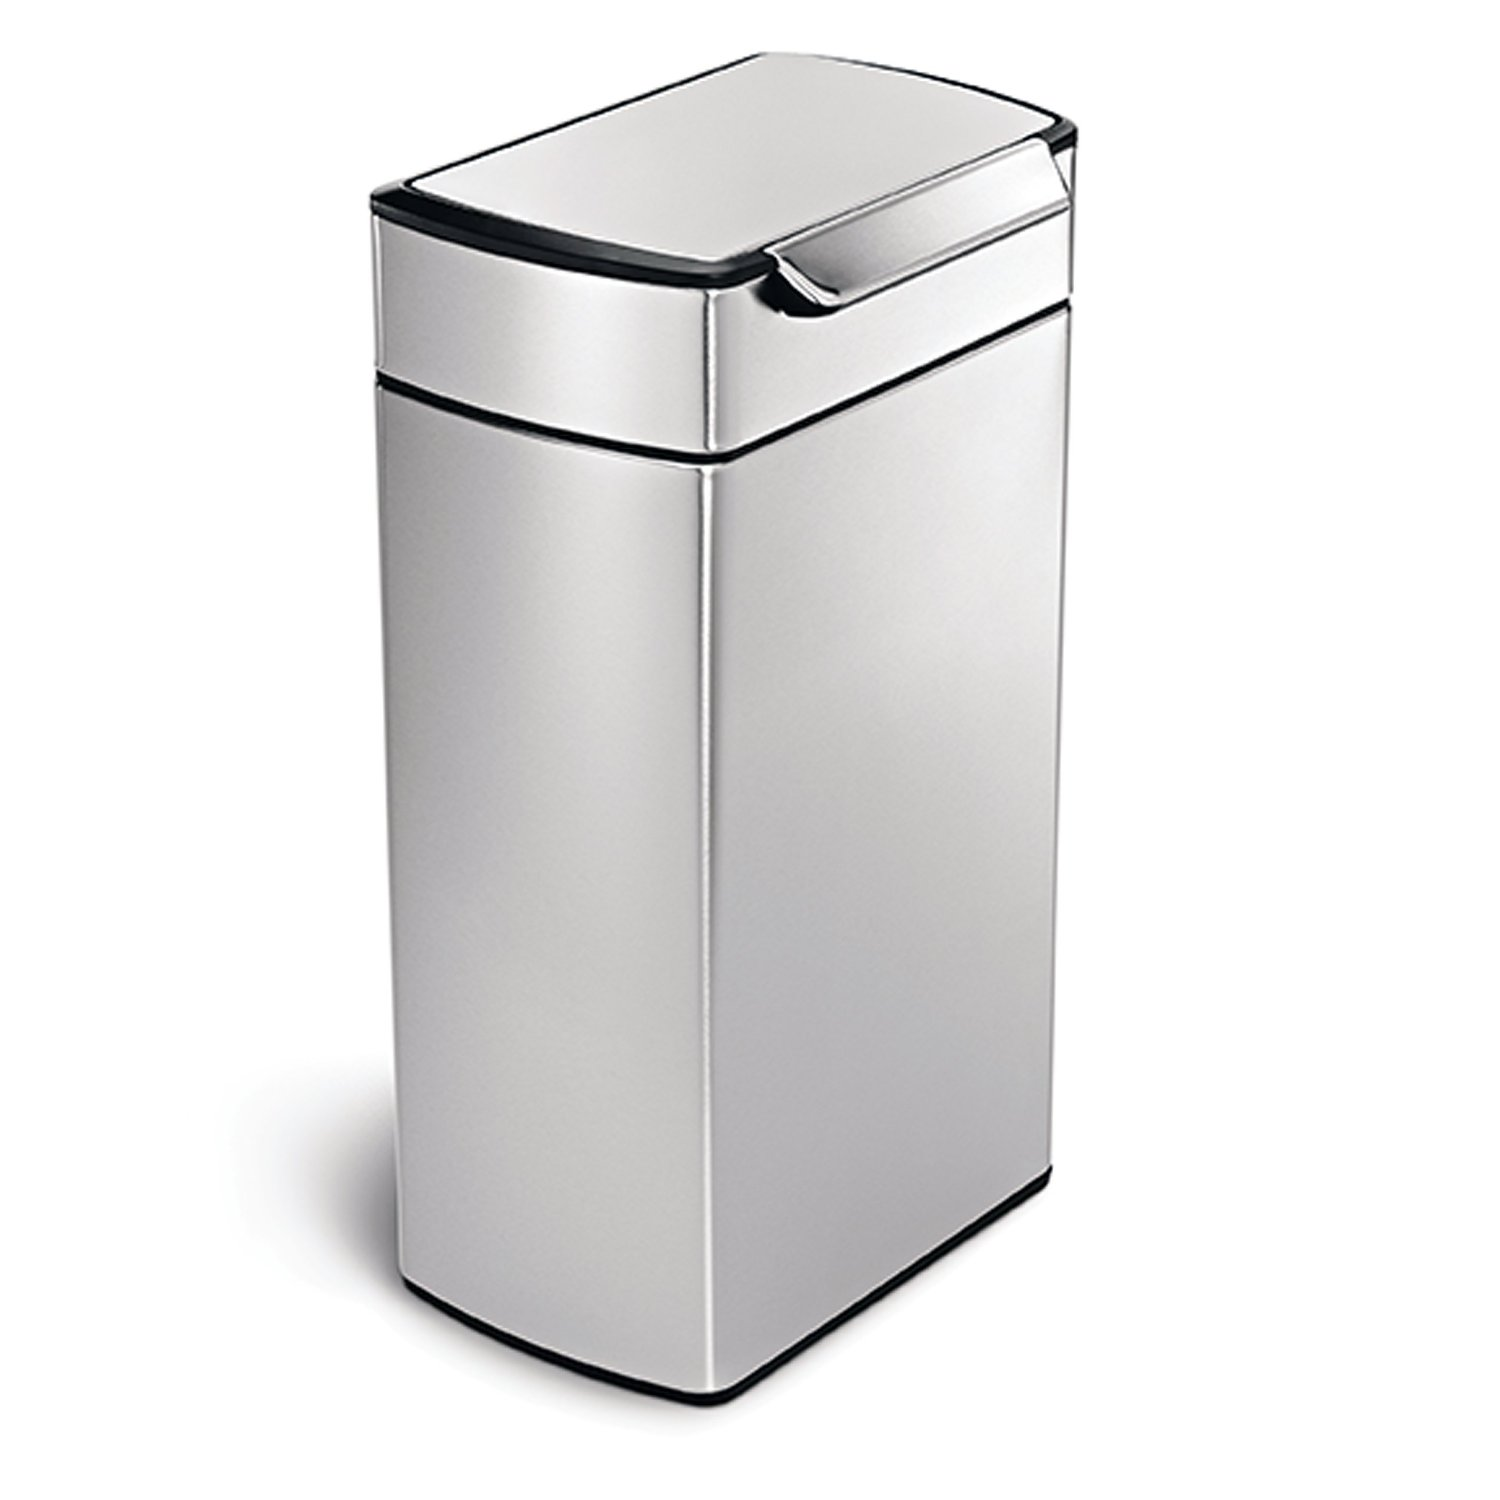 Simplehuman 40L touch-bar, inox brossé anti-traces